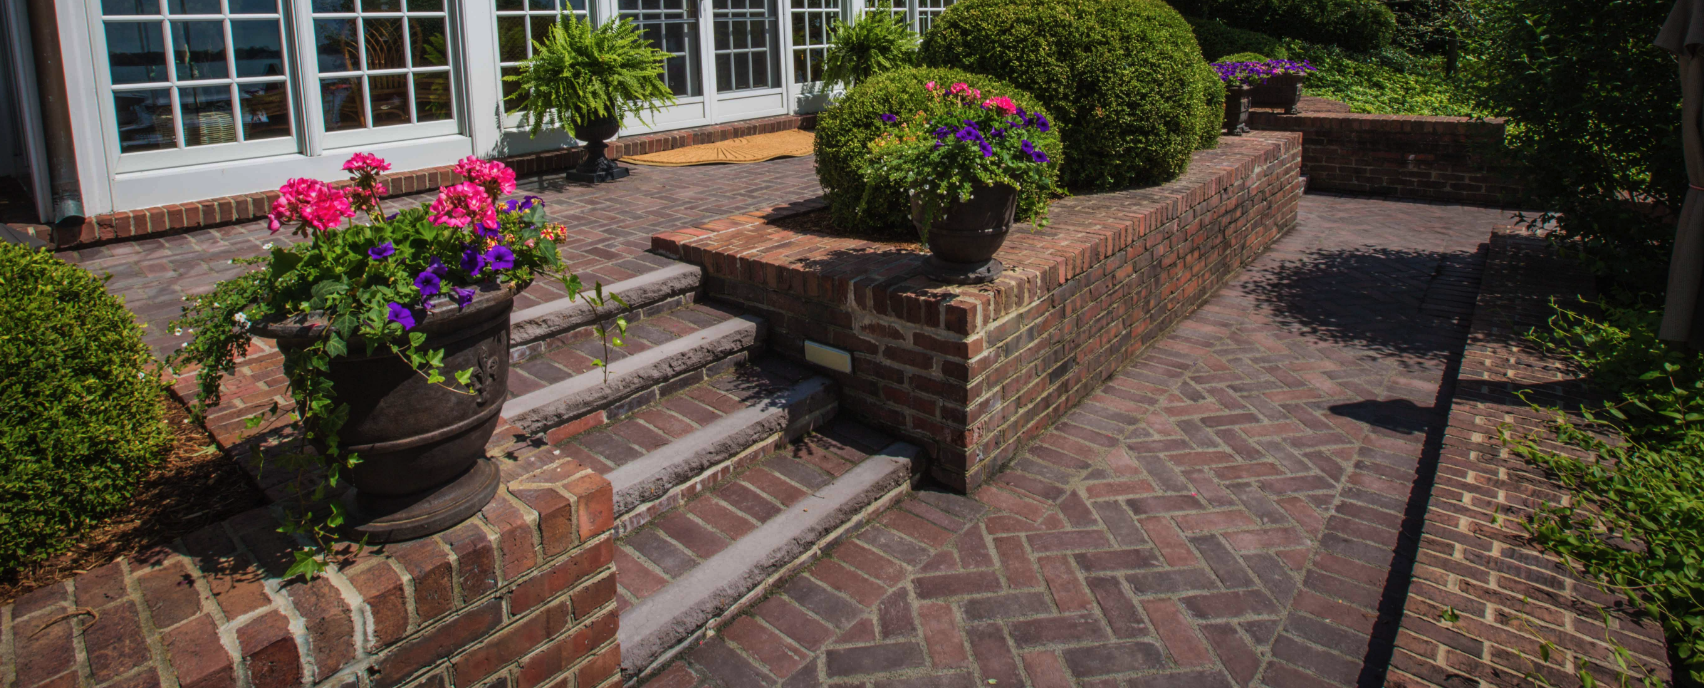 Patio Design Ideas: Using Concrete Pavers